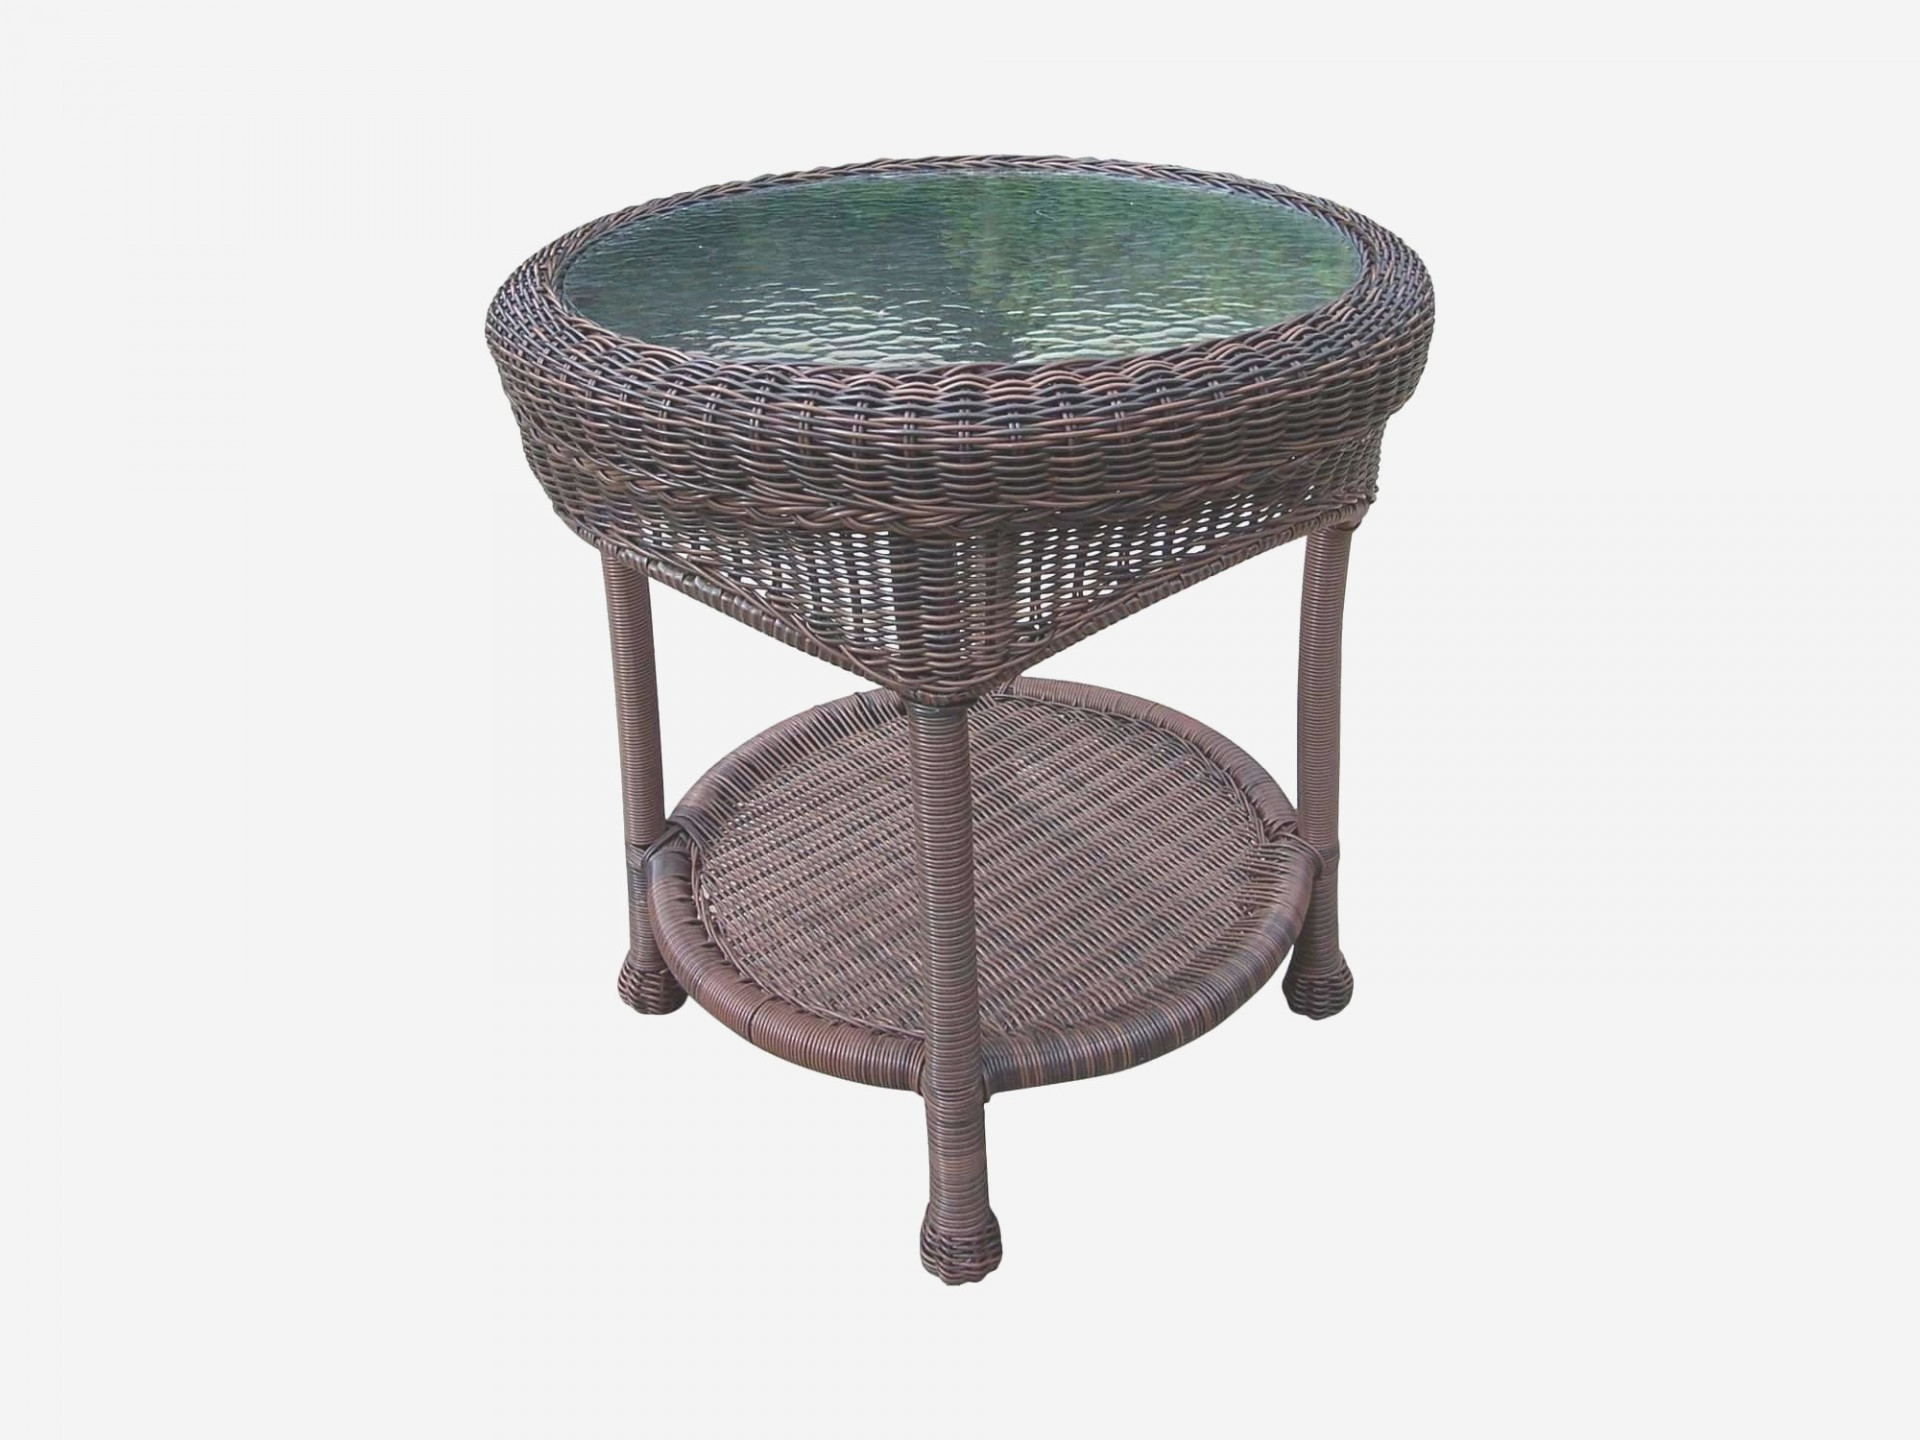 stunningly beautiful ceramic coffee table tables awesome plastic outdoor side luxury wicker fortable rowan small white lamps for bedroom round lamp living room bar legs mila